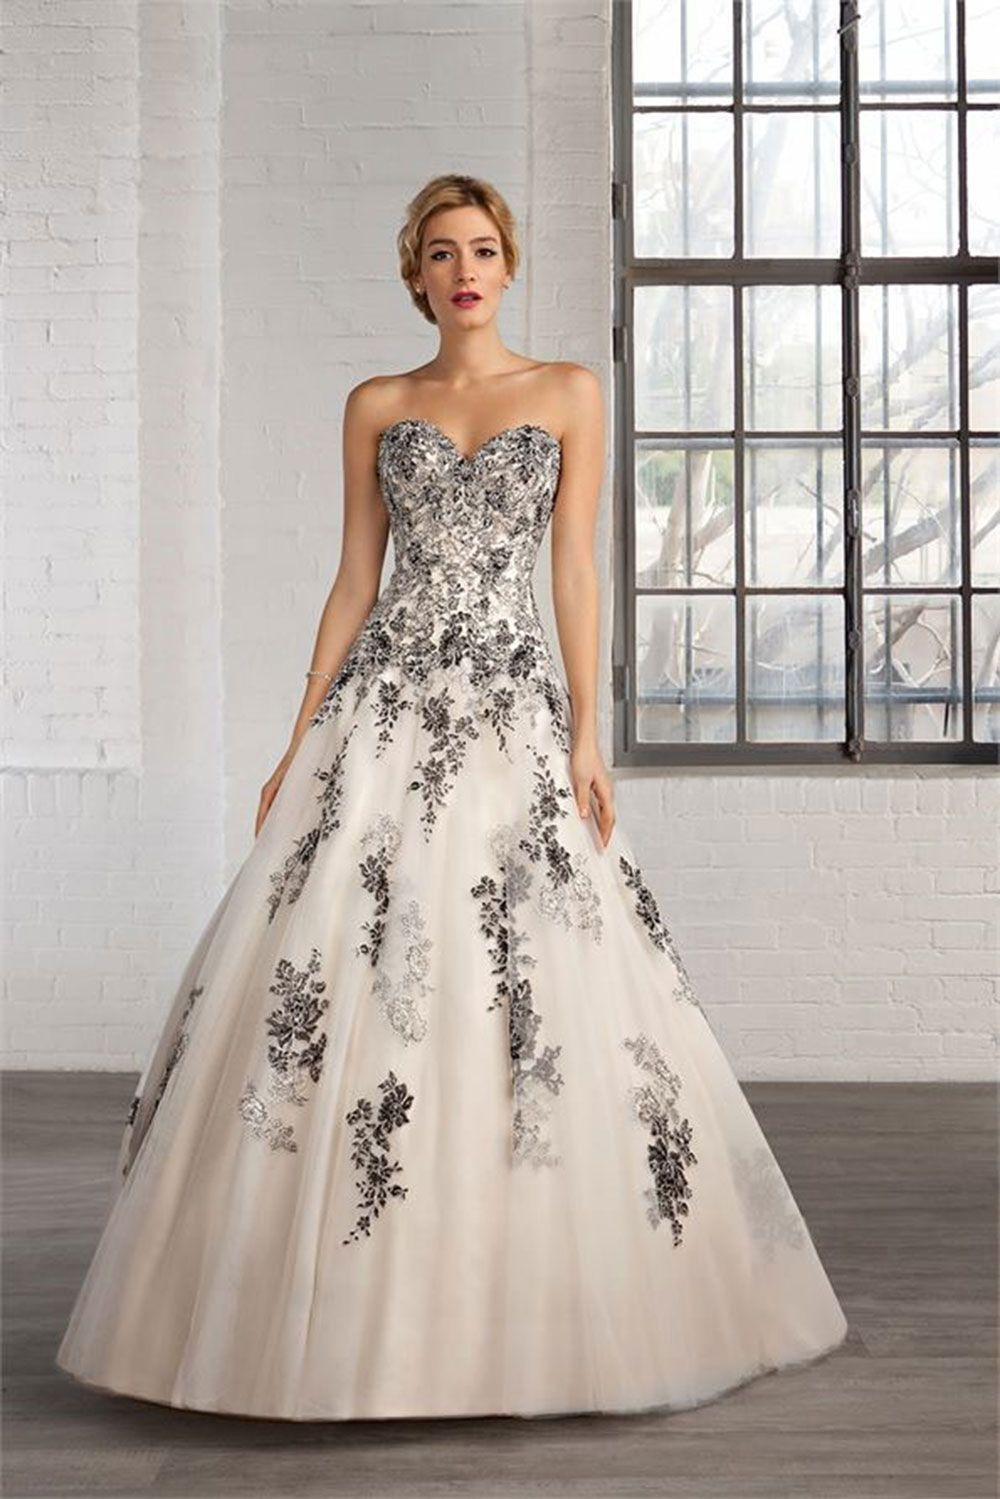 47194efbd9b If you want to incorporate some black into your wedding gown but aren t  feeling